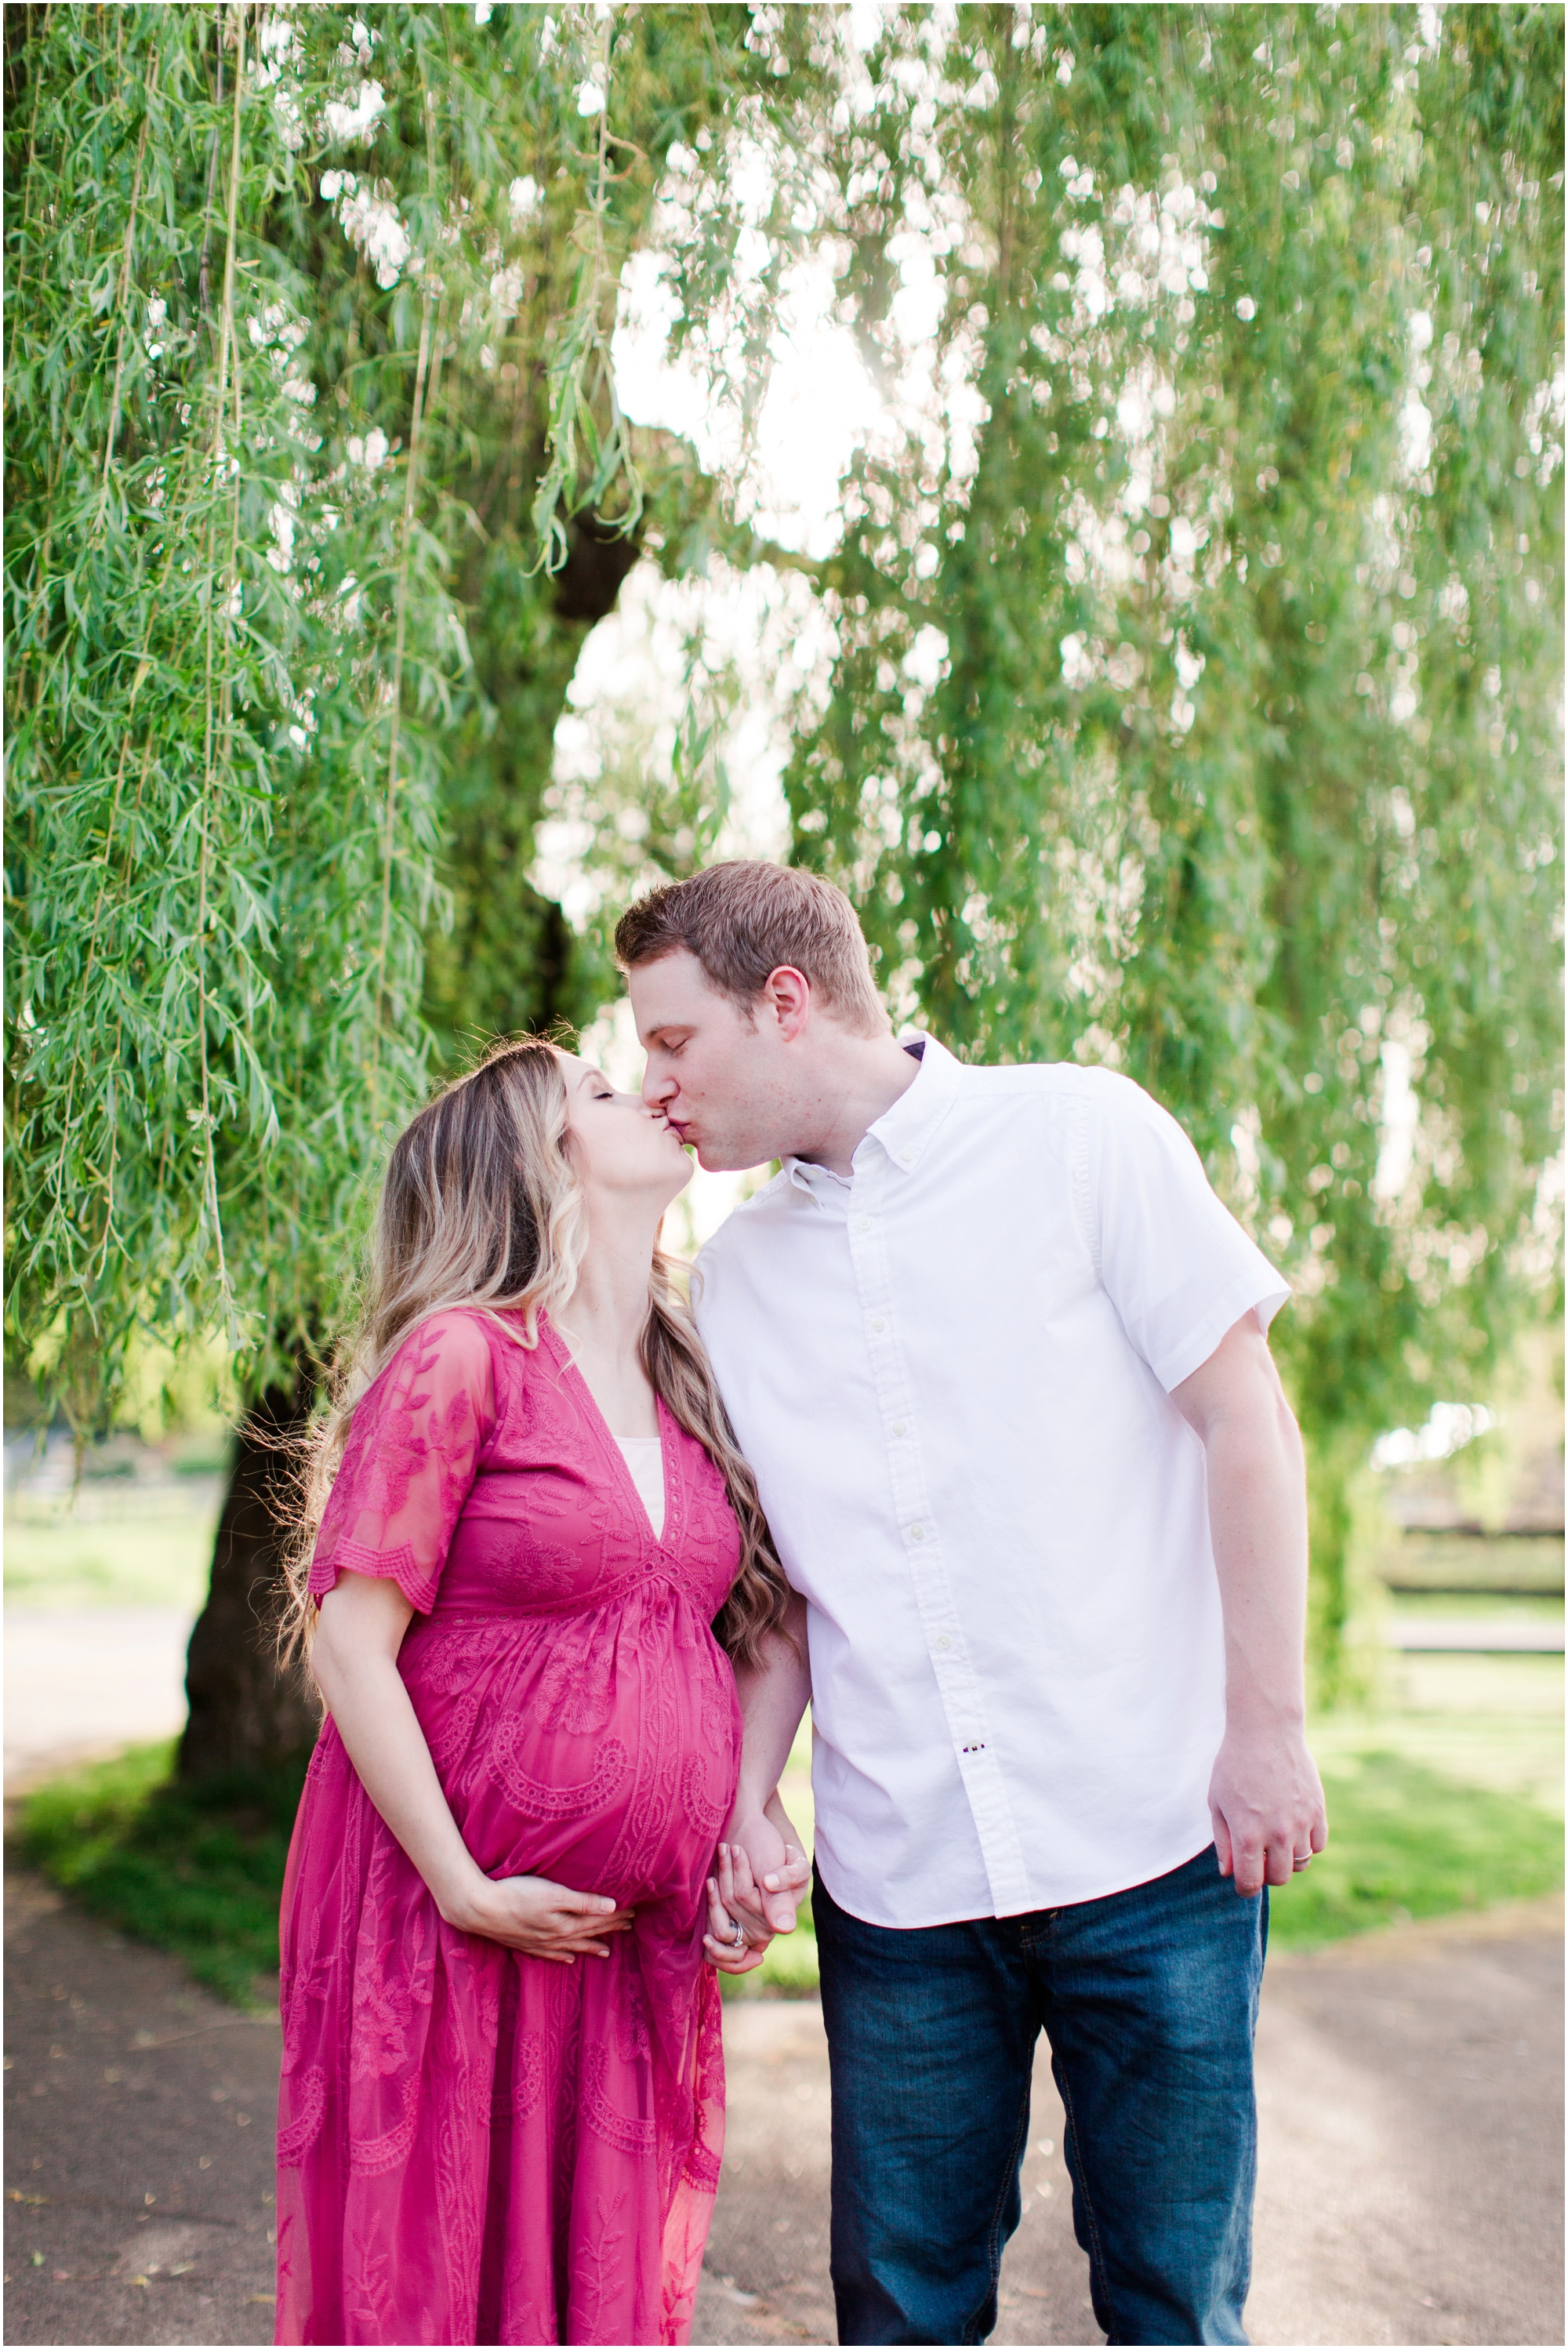 Wild Hearts Farm maternity shoot in Tacoma. Photos by Briana Calderon Photography based in the greater Seattle Tacoma Area._1193.jpg